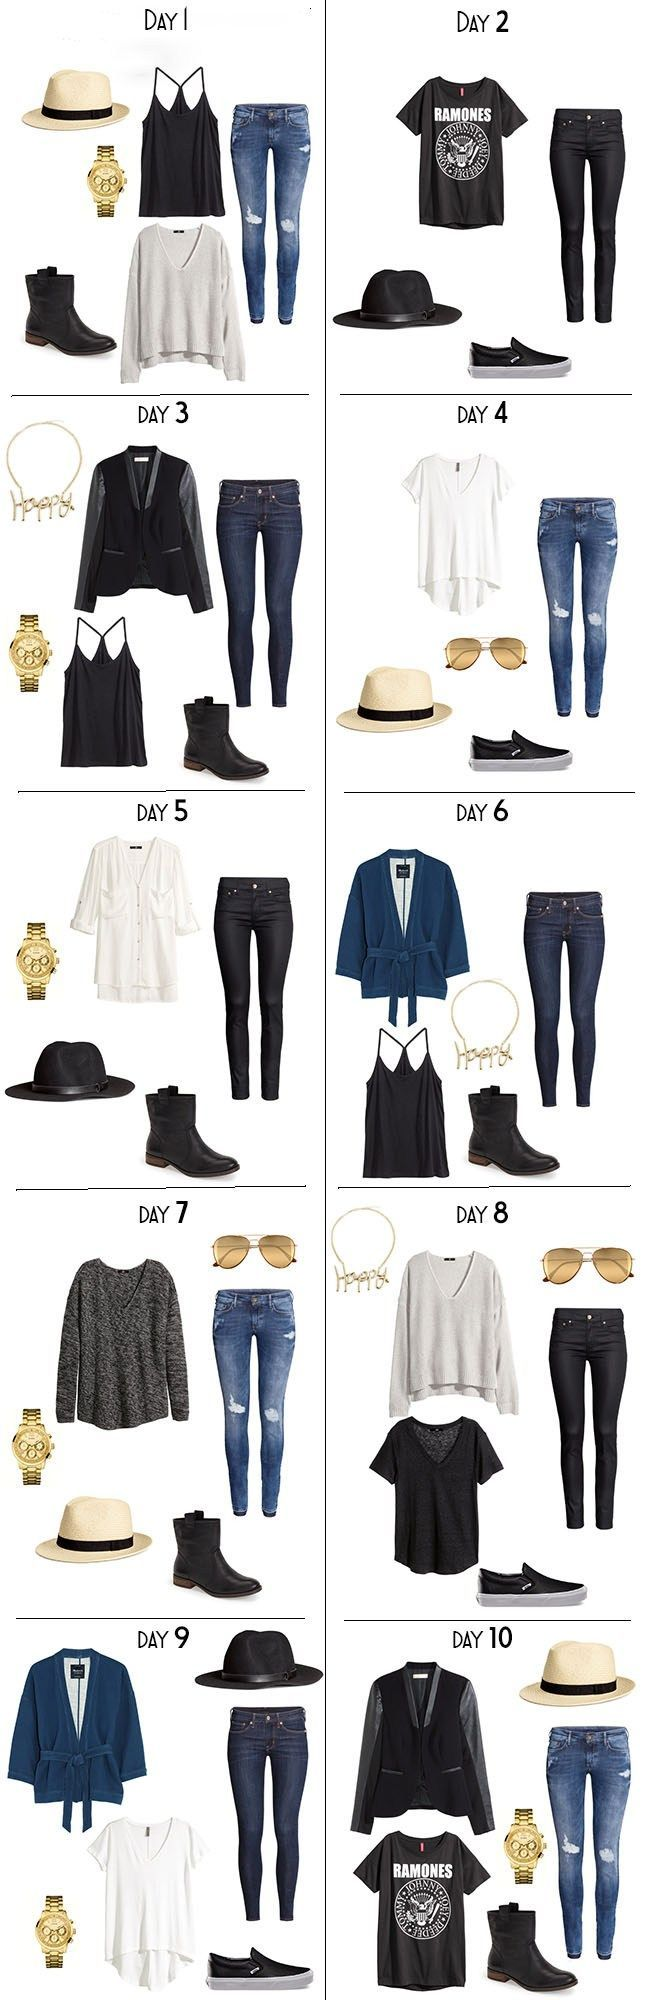 Packing Light Outfit Options for Transitional Weather -